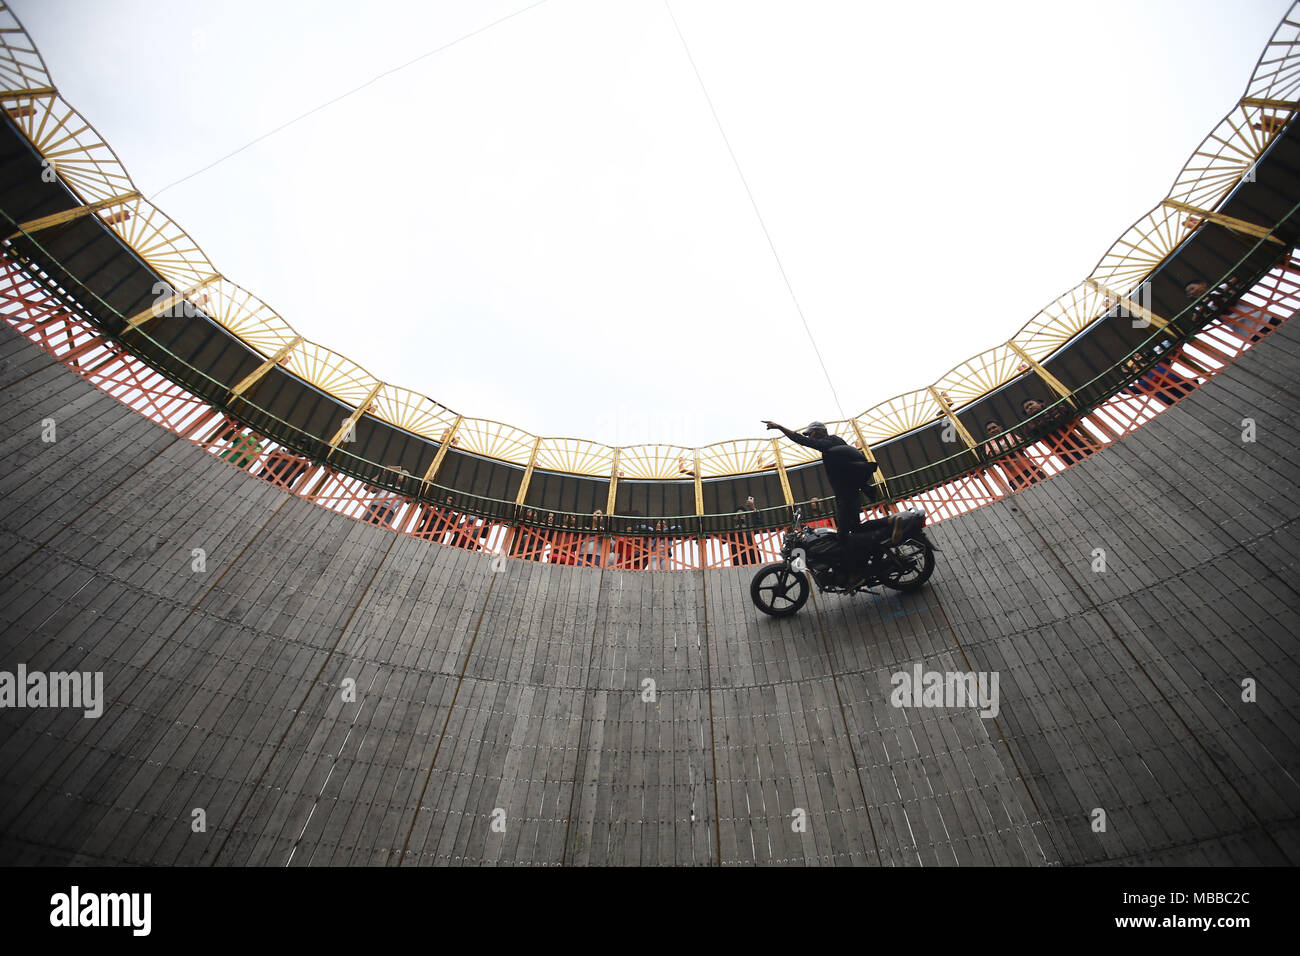 Bhaktapur, Nepal. 10th Apr, 2018. A stuntman gestures as he display his skills during the 'Well of Death' spectacle at a fair in Bhaktapur, Nepal on Tuesday, April 10, 2018. Credit: Skanda Gautam/ZUMA Wire/Alamy Live News - Stock Image